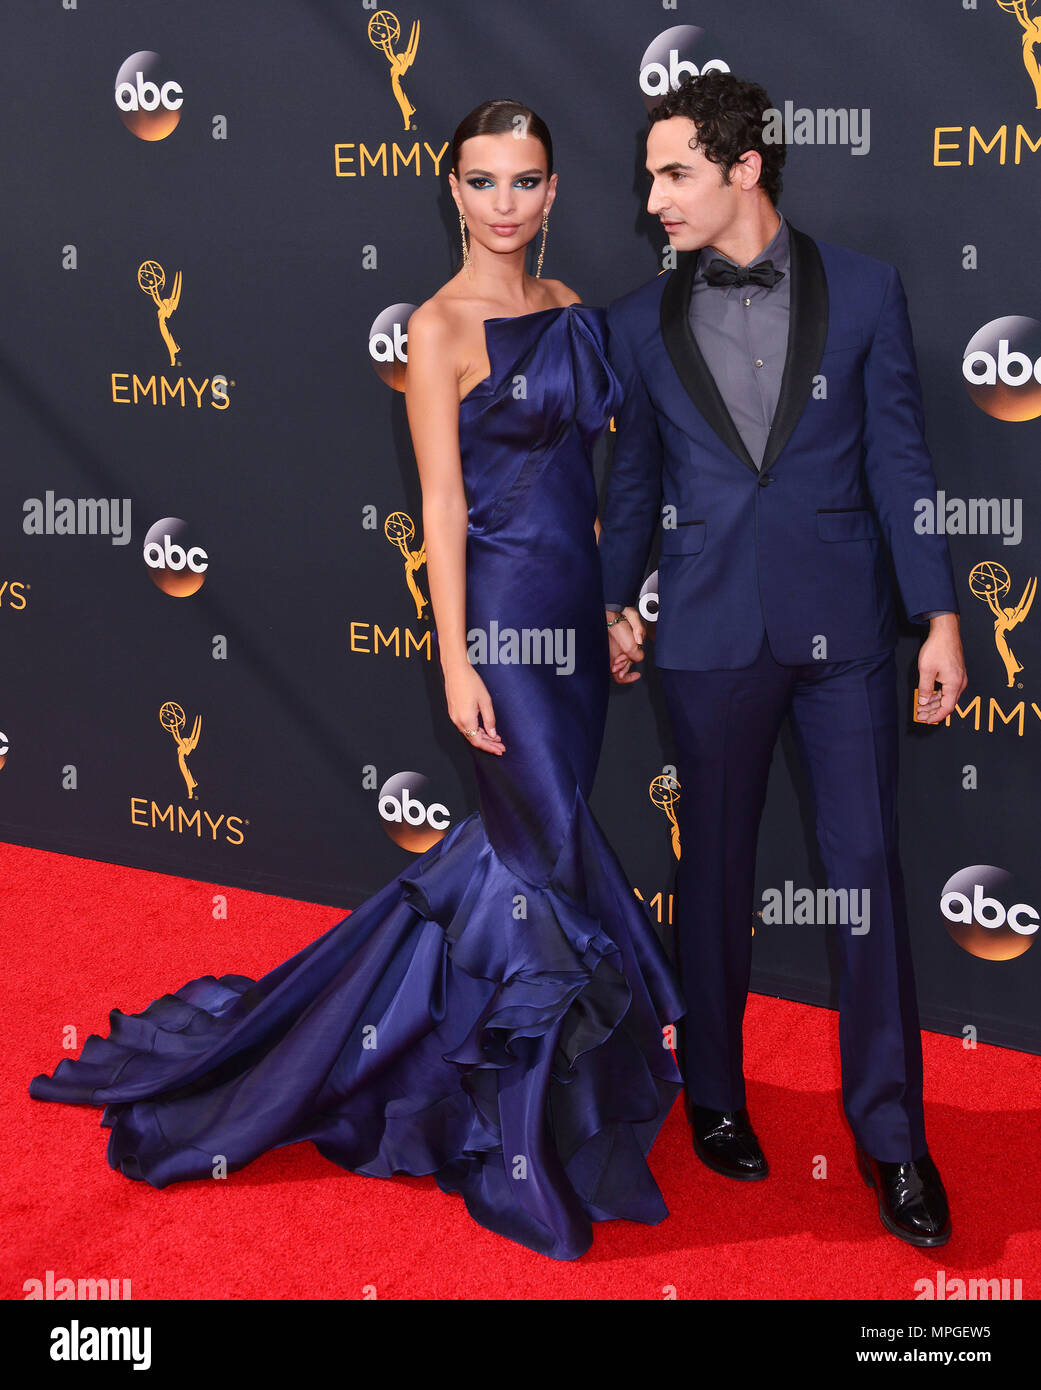 Emily Ratajkowski, Zac Posen 112 at the 68th Emmy Awards 2016 at the Microsoft Theatre in Los Angeles. September 18, 2016.Emily Ratajkowski, Zac Posen 112  Event in Hollywood Life - California, Red Carpet Event, USA, Film Industry, Celebrities, Photography, Bestof, Arts Culture and Entertainment, Topix Celebrities fashion, Best of, Hollywood Life, Event in Hollywood Life - California, Red Carpet and backstage, movie celebrities, TV celebrities, Music celebrities, Arts Culture and Entertainment, vertical, one person, Photography,    inquiry tsuni@Gamma-USA.com , Credit Tsuni / USA,   group or c Stock Photo